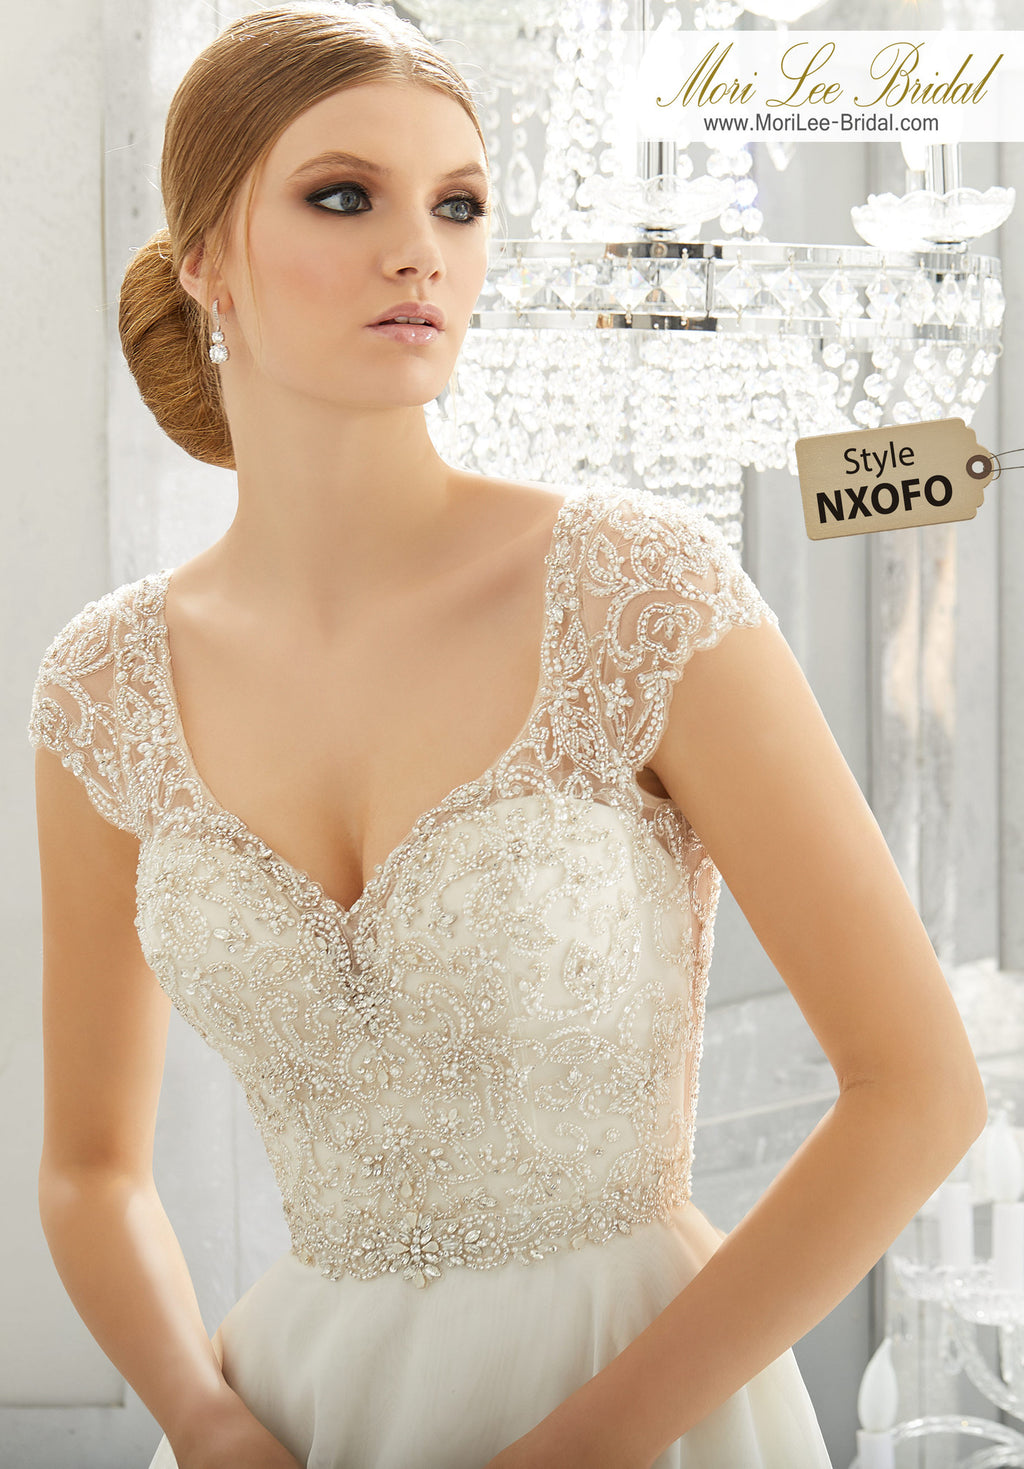 NXOFO - Mori Lee Bridal